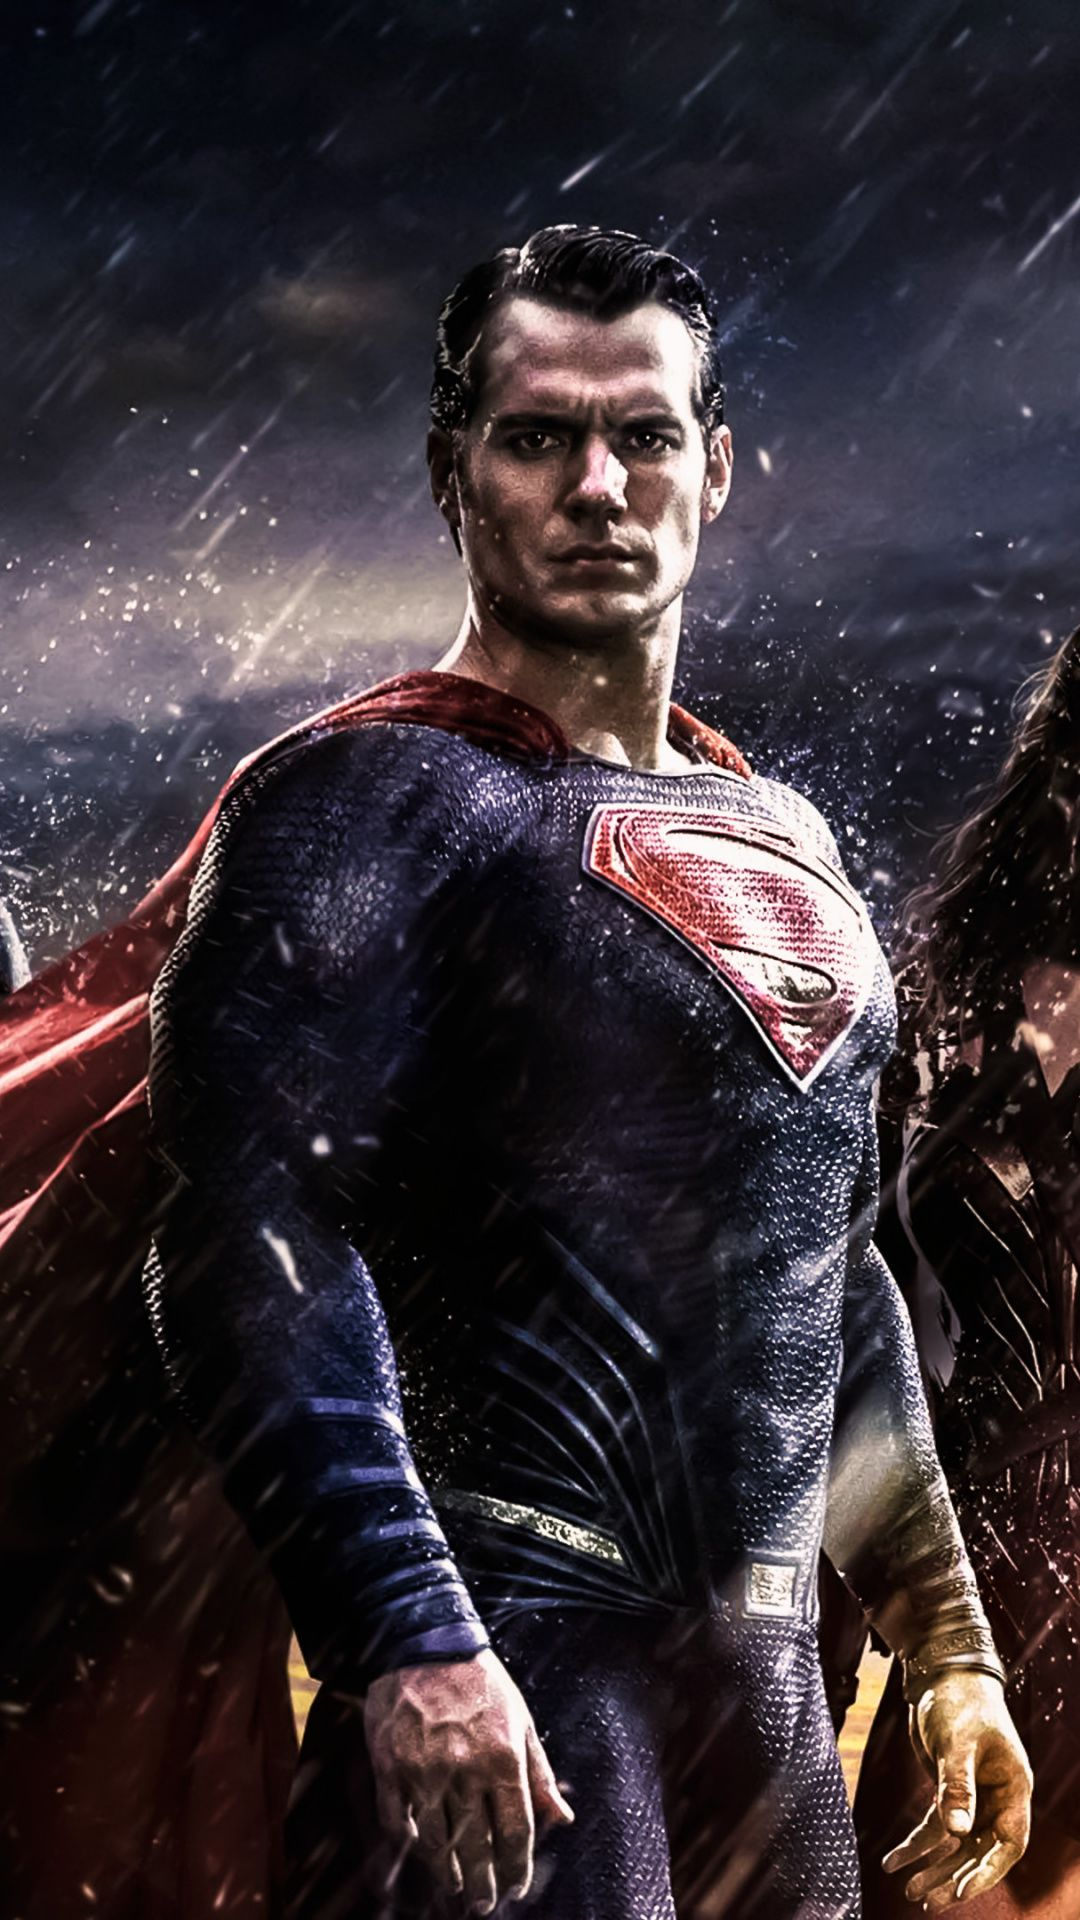 Superman wallpaper for your phone